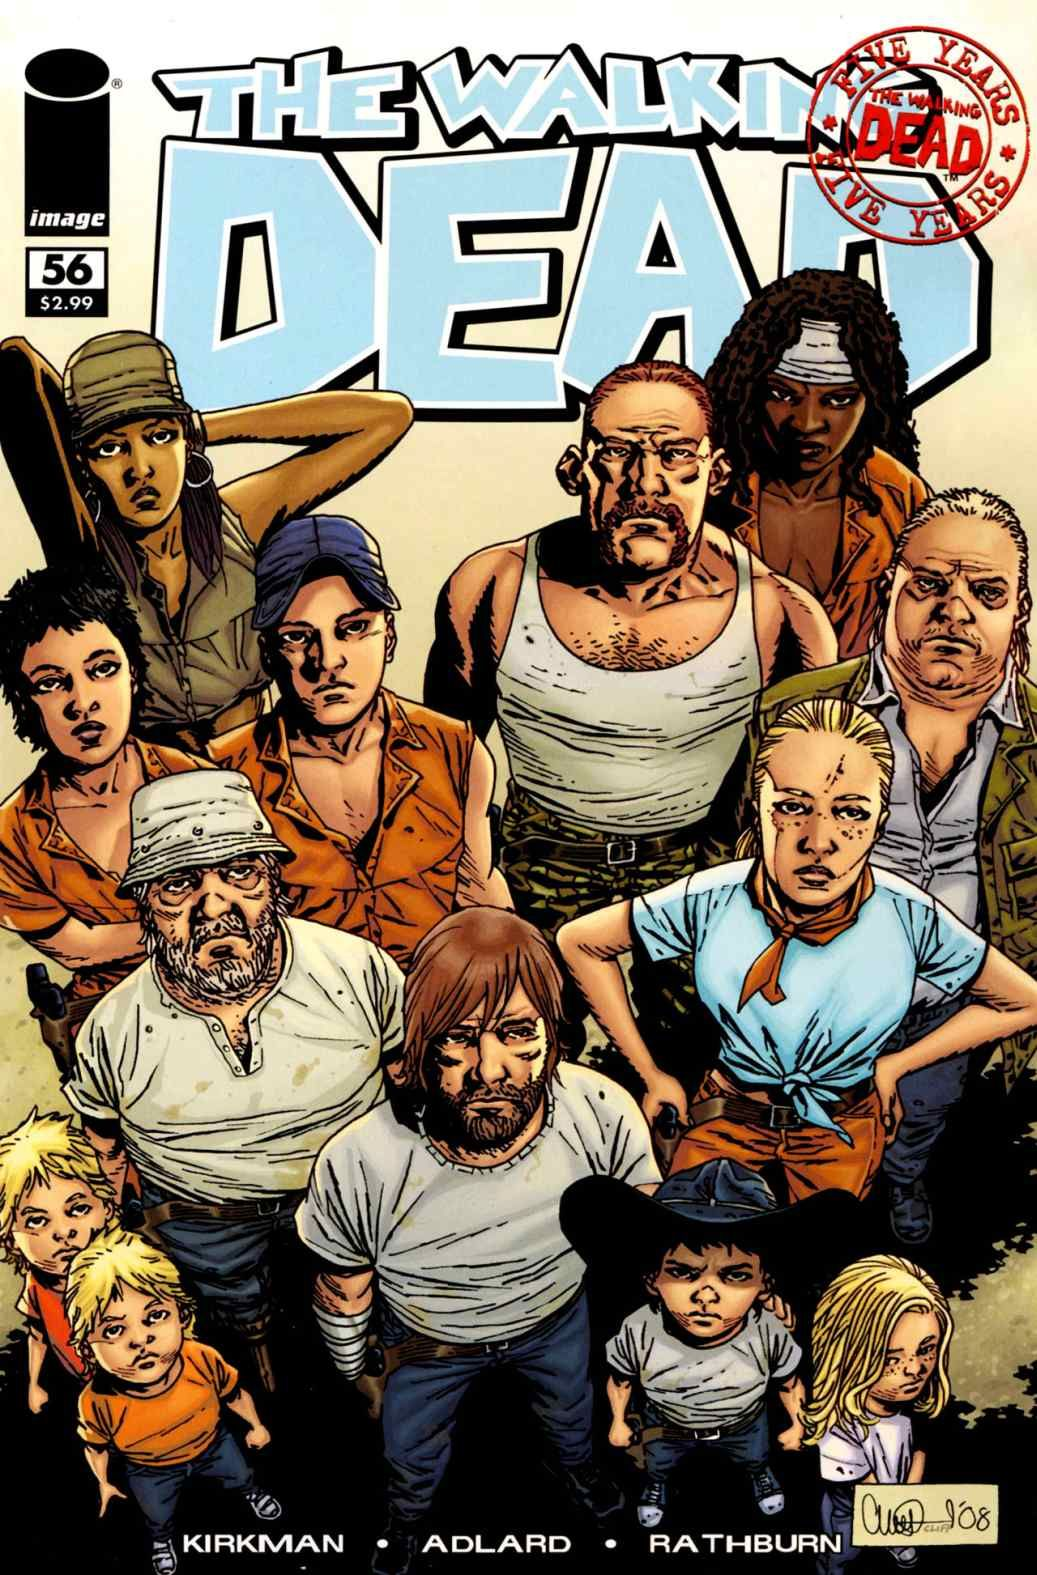 Read Comics Online Free The Walking Dead Chapter 056 Page 1 Respiro Skinner